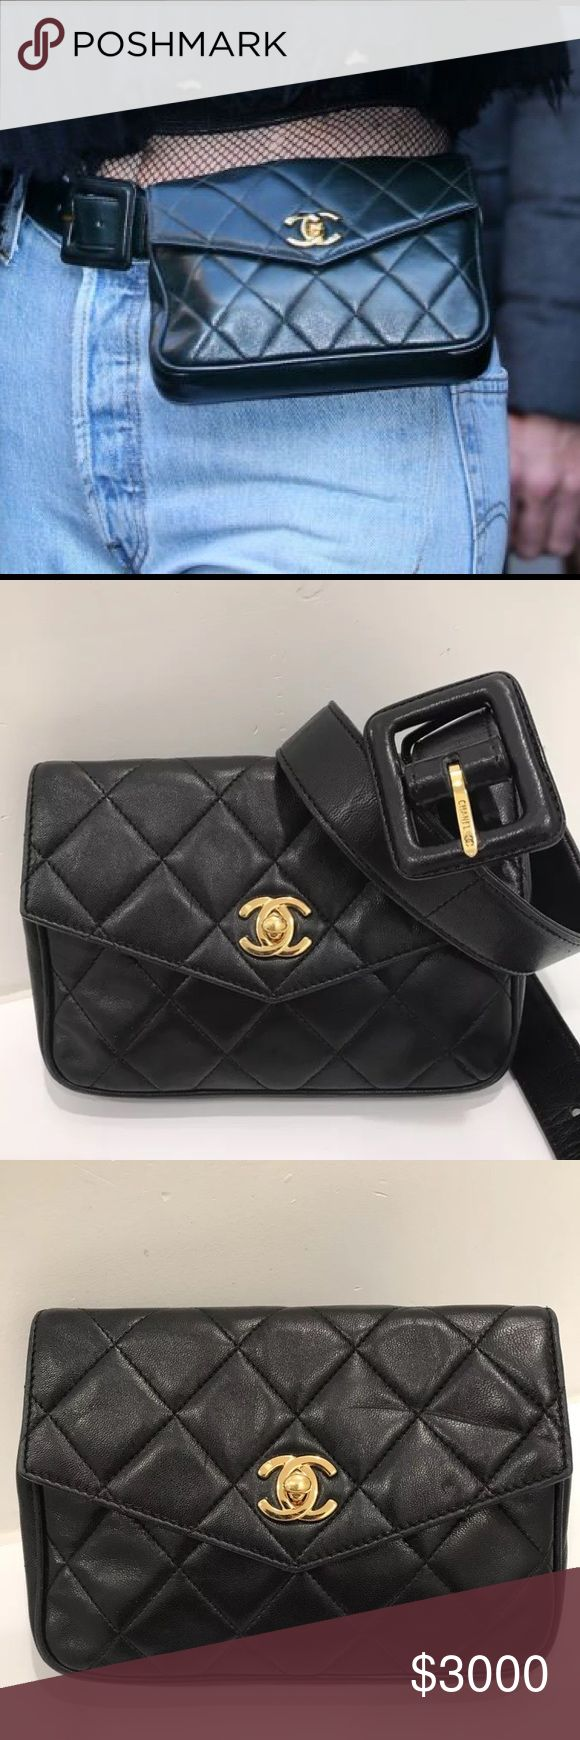 RARE Chanel Fanny Pack Waist Bag RARE Vintage Chanel quilted lambskin fanny pack. Overall good used condition: some minor scuffing, wrinkling & a few light scratches throughout. One bigger scratch on the front but still not too bad. Hologram intact ✅ Belt has 3 adjustments at 26,27 & 28 inches.  This is the same one Kendall Jenner wears! A highly coveted piece!   Reasonable offers welcome! No lowballing, this is a RARE piece!   Authentic & Posh will authenticate it again Ask all questions…